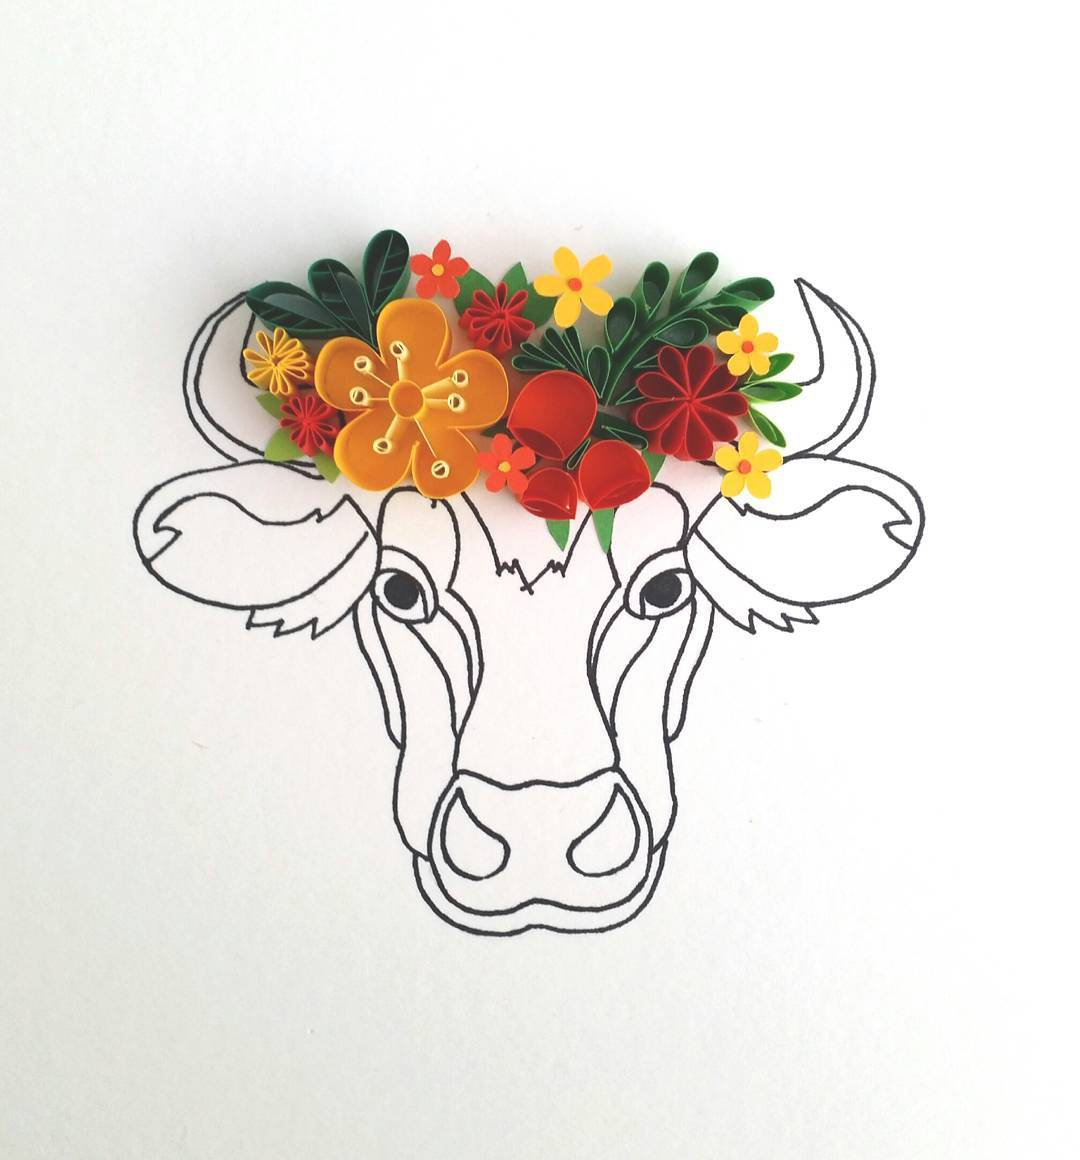 Colorful Paper Quilled Flowers Make Line Drawings Come Alive -paper-art, paper